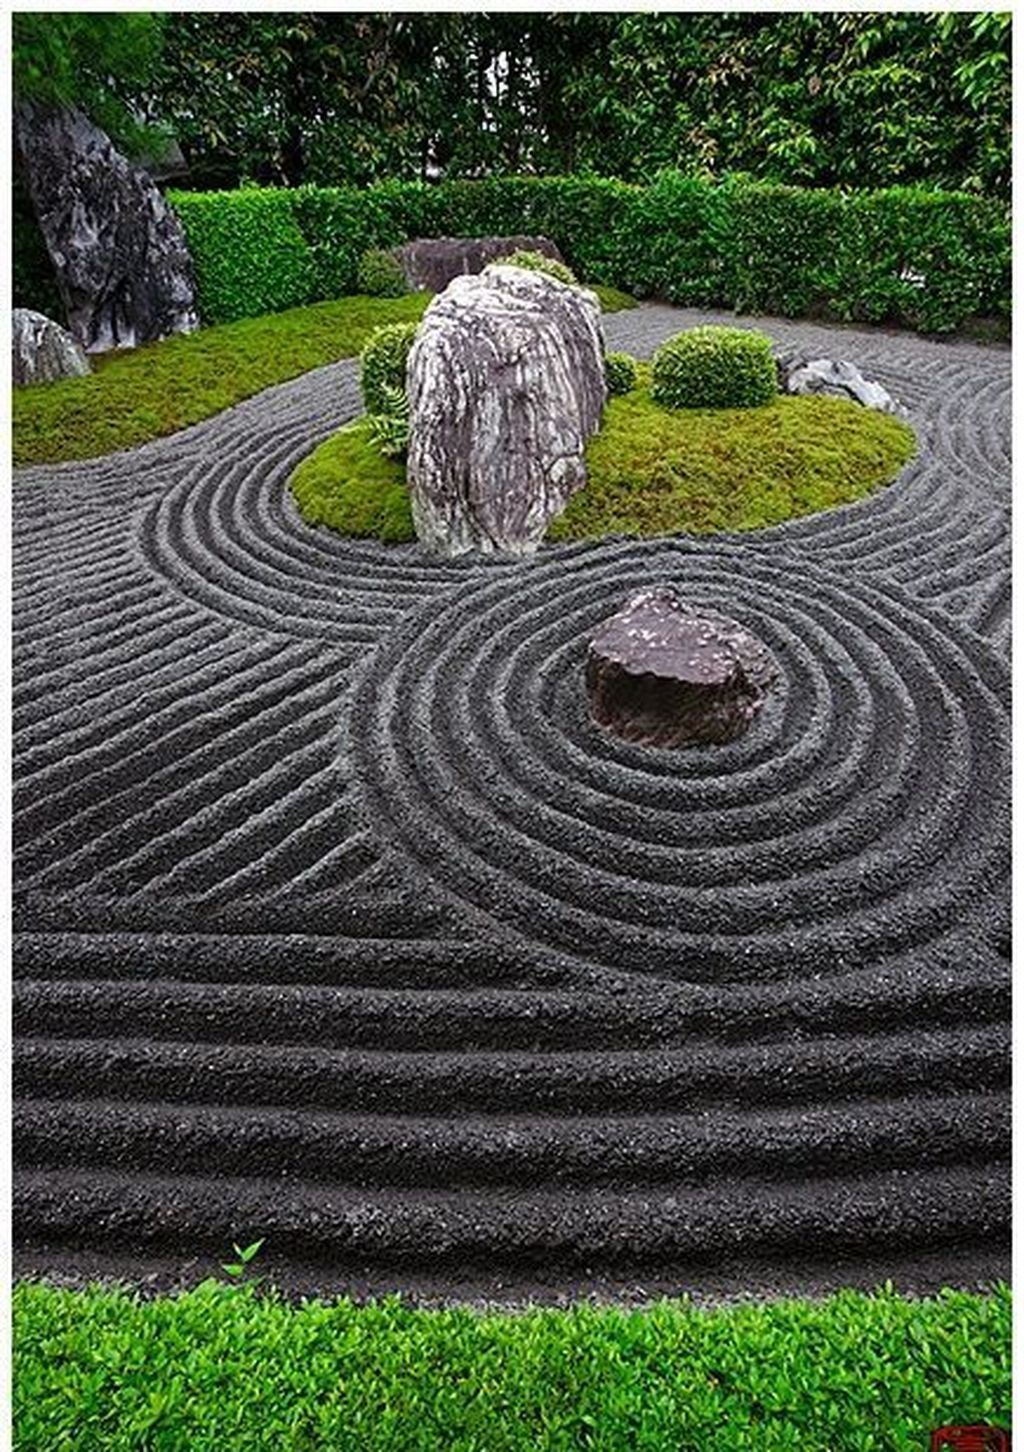 45 Amazing Japanese Rock Garden Ideas For Beautiful Home Yard In